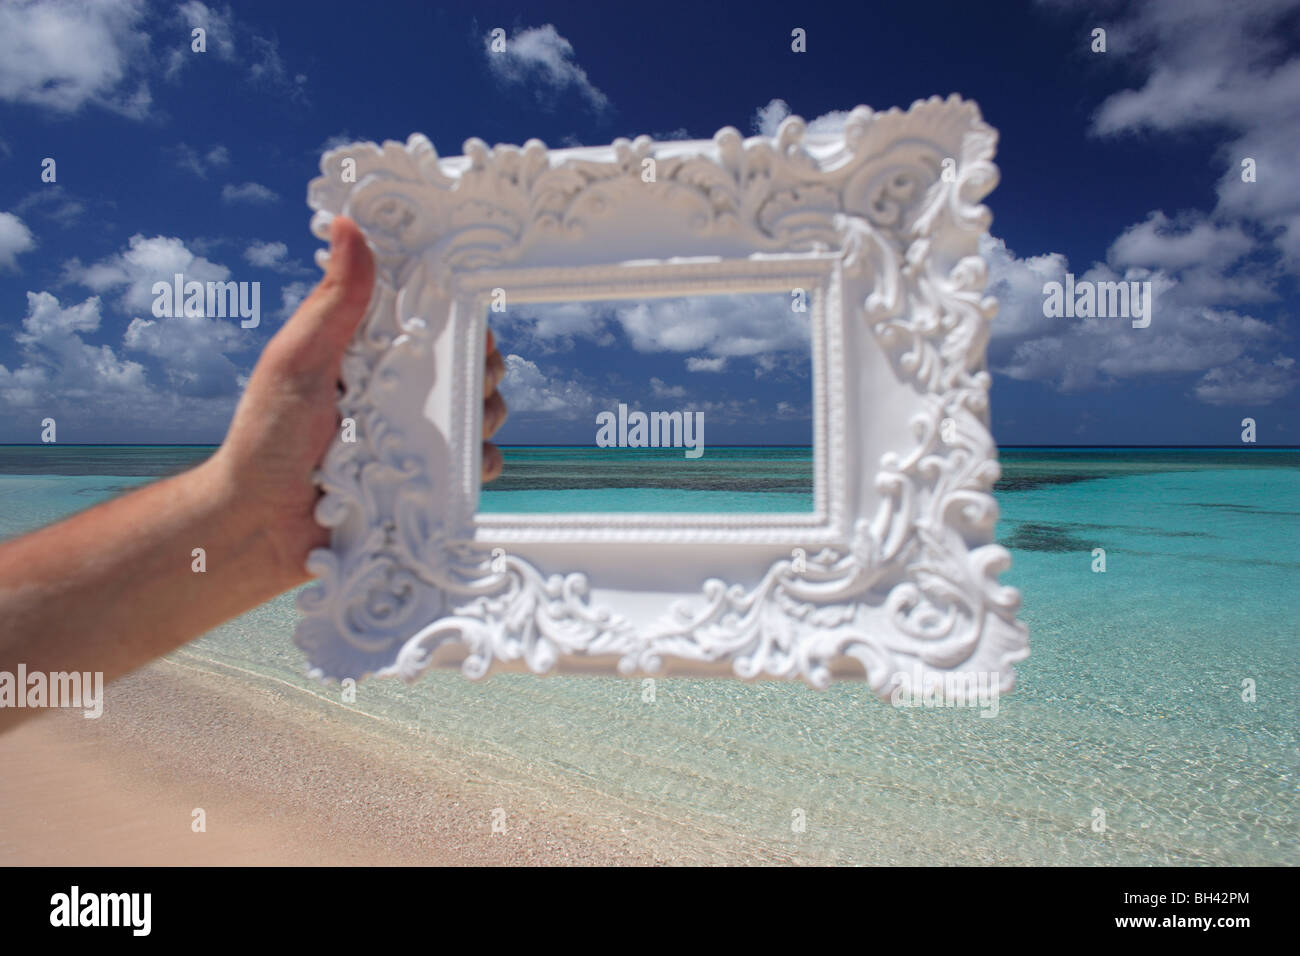 A man's hand holding a white ornate picture frame in the air against a deserted tropical beach - Stock Image